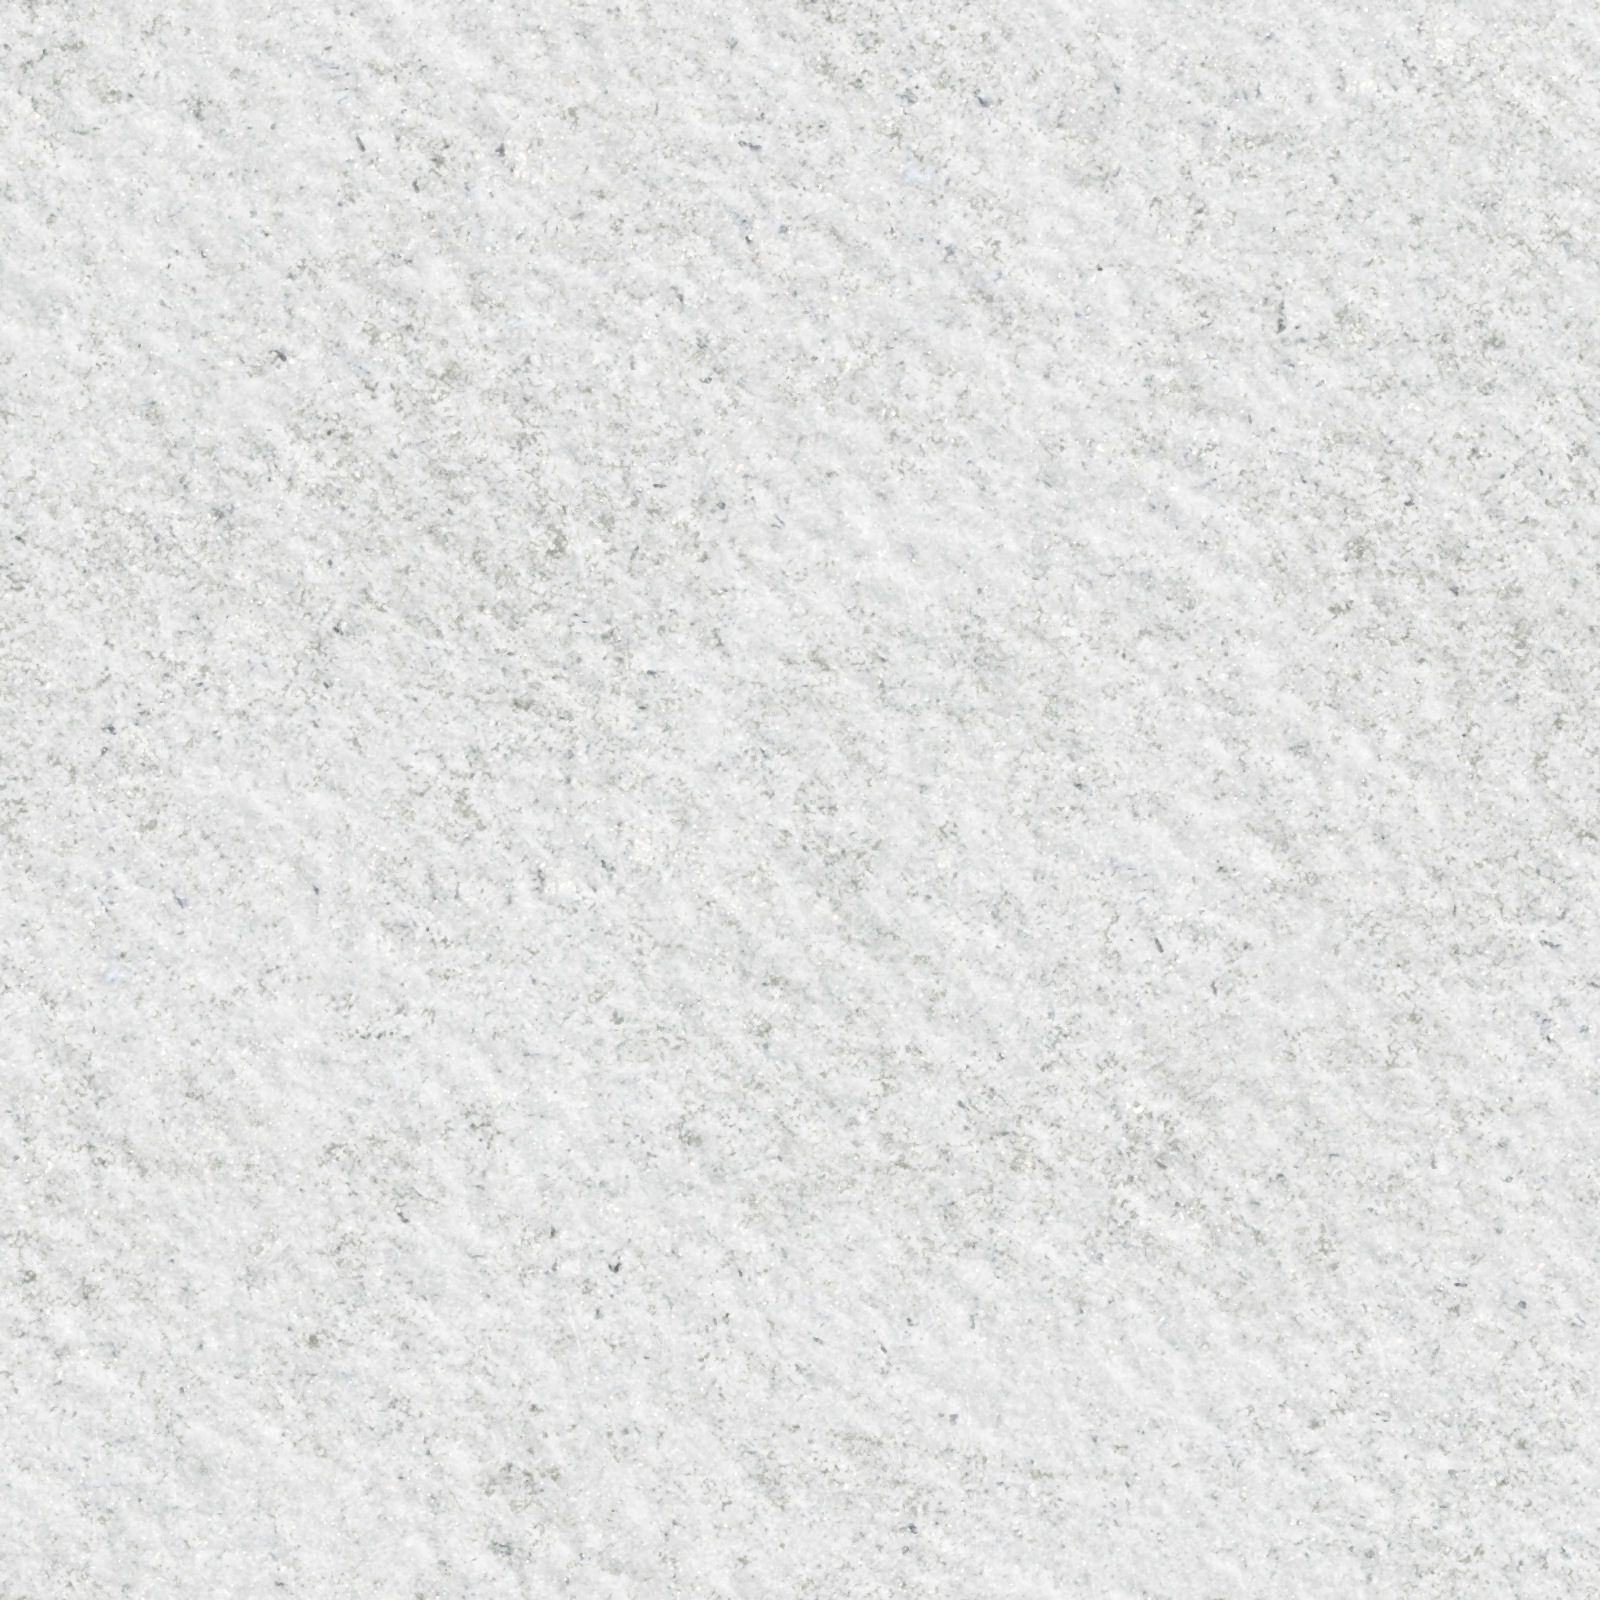 white carpet texture. White Carpet Texture Seamlessfree Seamless Textures Free Ground Dzdriqj Pinterest